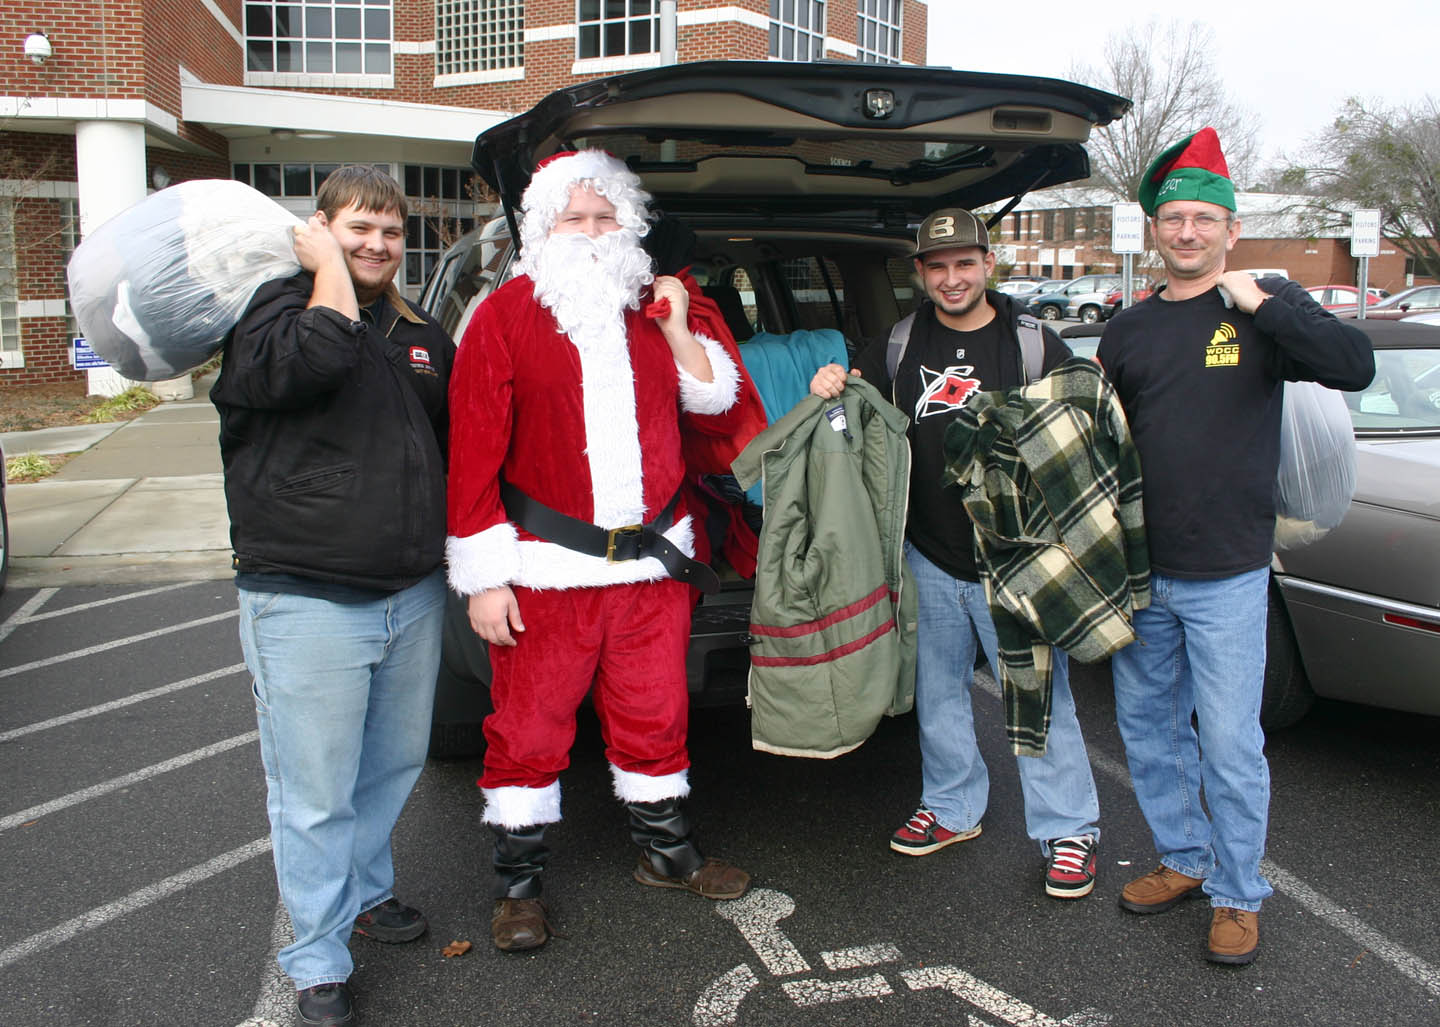 Read the full story, Central Carolina C.C. Broadcasting students collect, donate coats